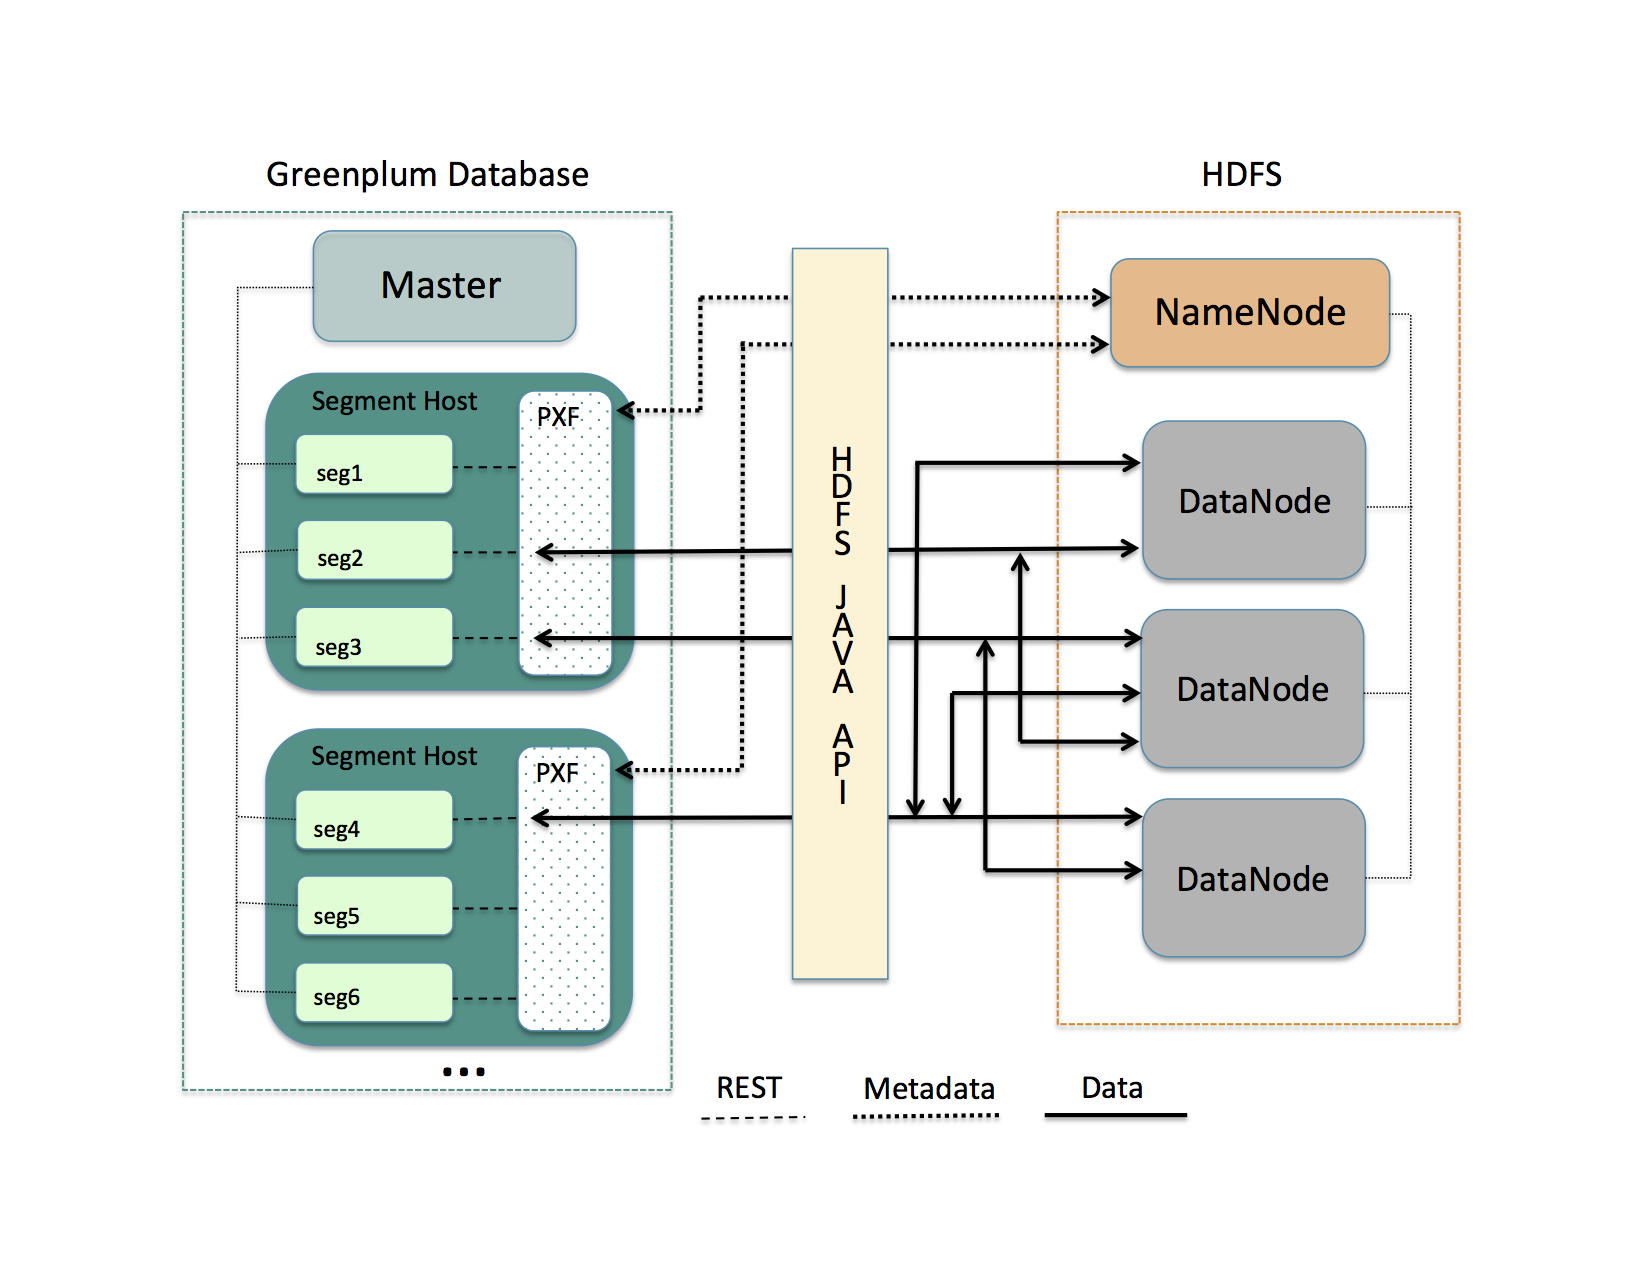 Figure 1: data and control flow between a PXF cluster collocated on Greenplum segments and an HDFS cluster.